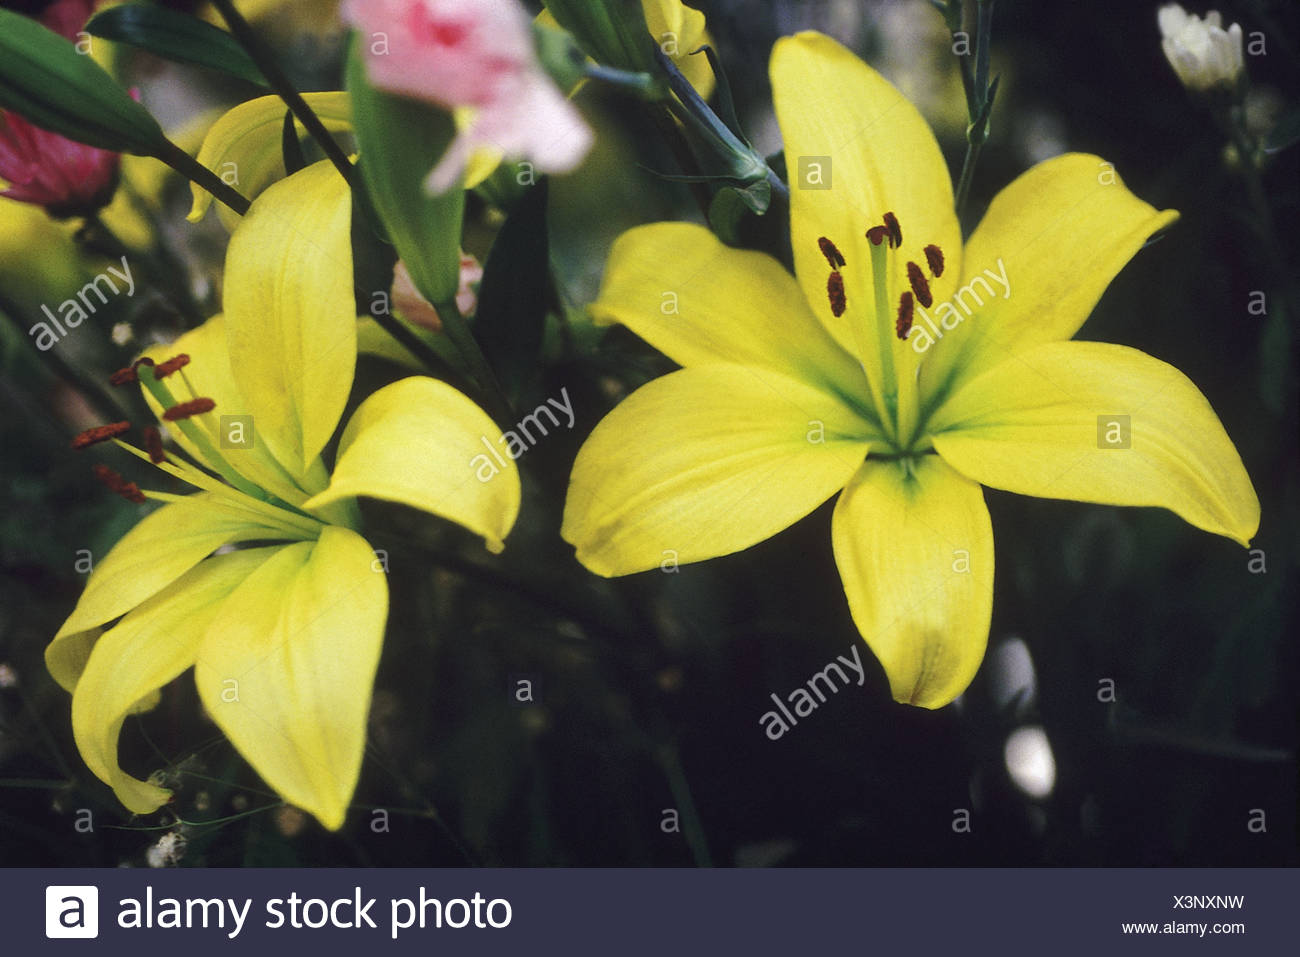 Lily flowers symbolize purity and refined beauty color or type can lily flowers symbolize purity and refined beauty color or type can convey different meanings yellow gaiety mightylinksfo